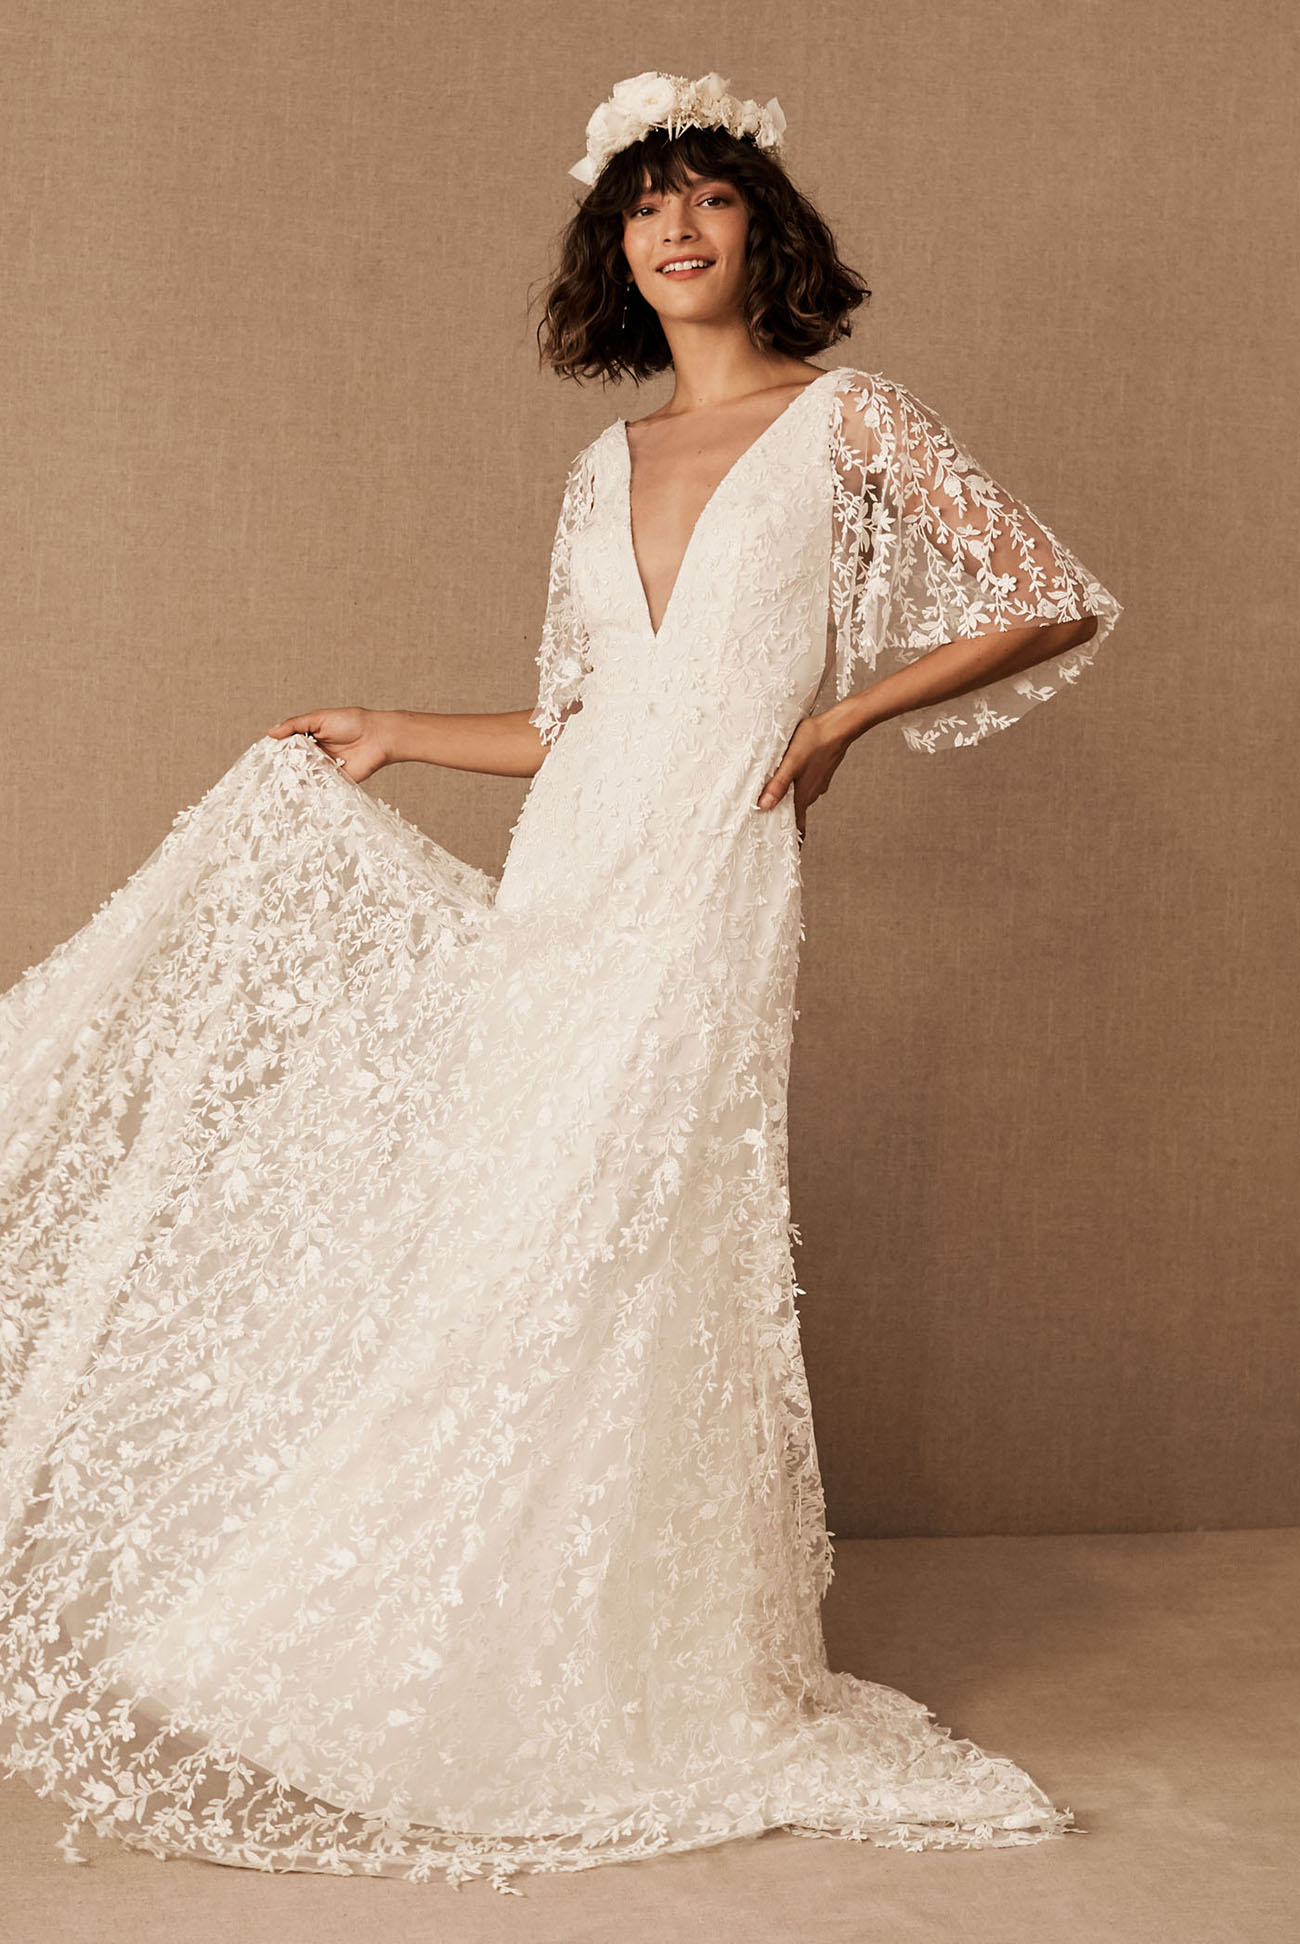 Exclusive Preview Alert: BHLDN?s Spring 2020 Gowns are Full of Whimsy and Delicate Details